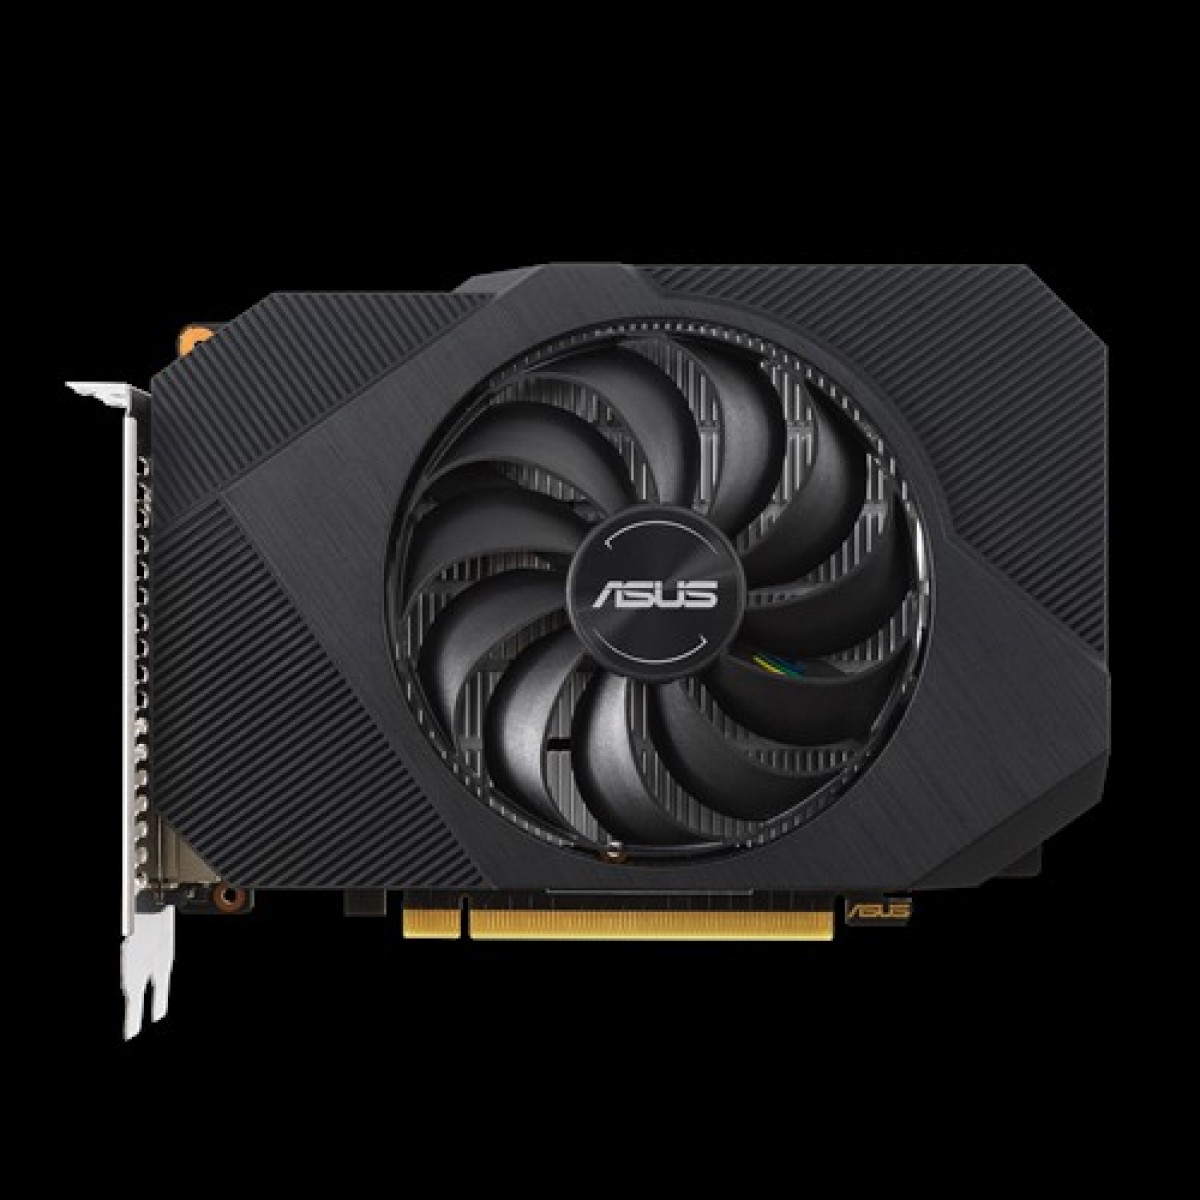 Placa de Vídeo ASUS Phoenix GeForce GTX 1650 OC, 4GB GDDR6, 128bit, PH-GTX1650-O4GD6